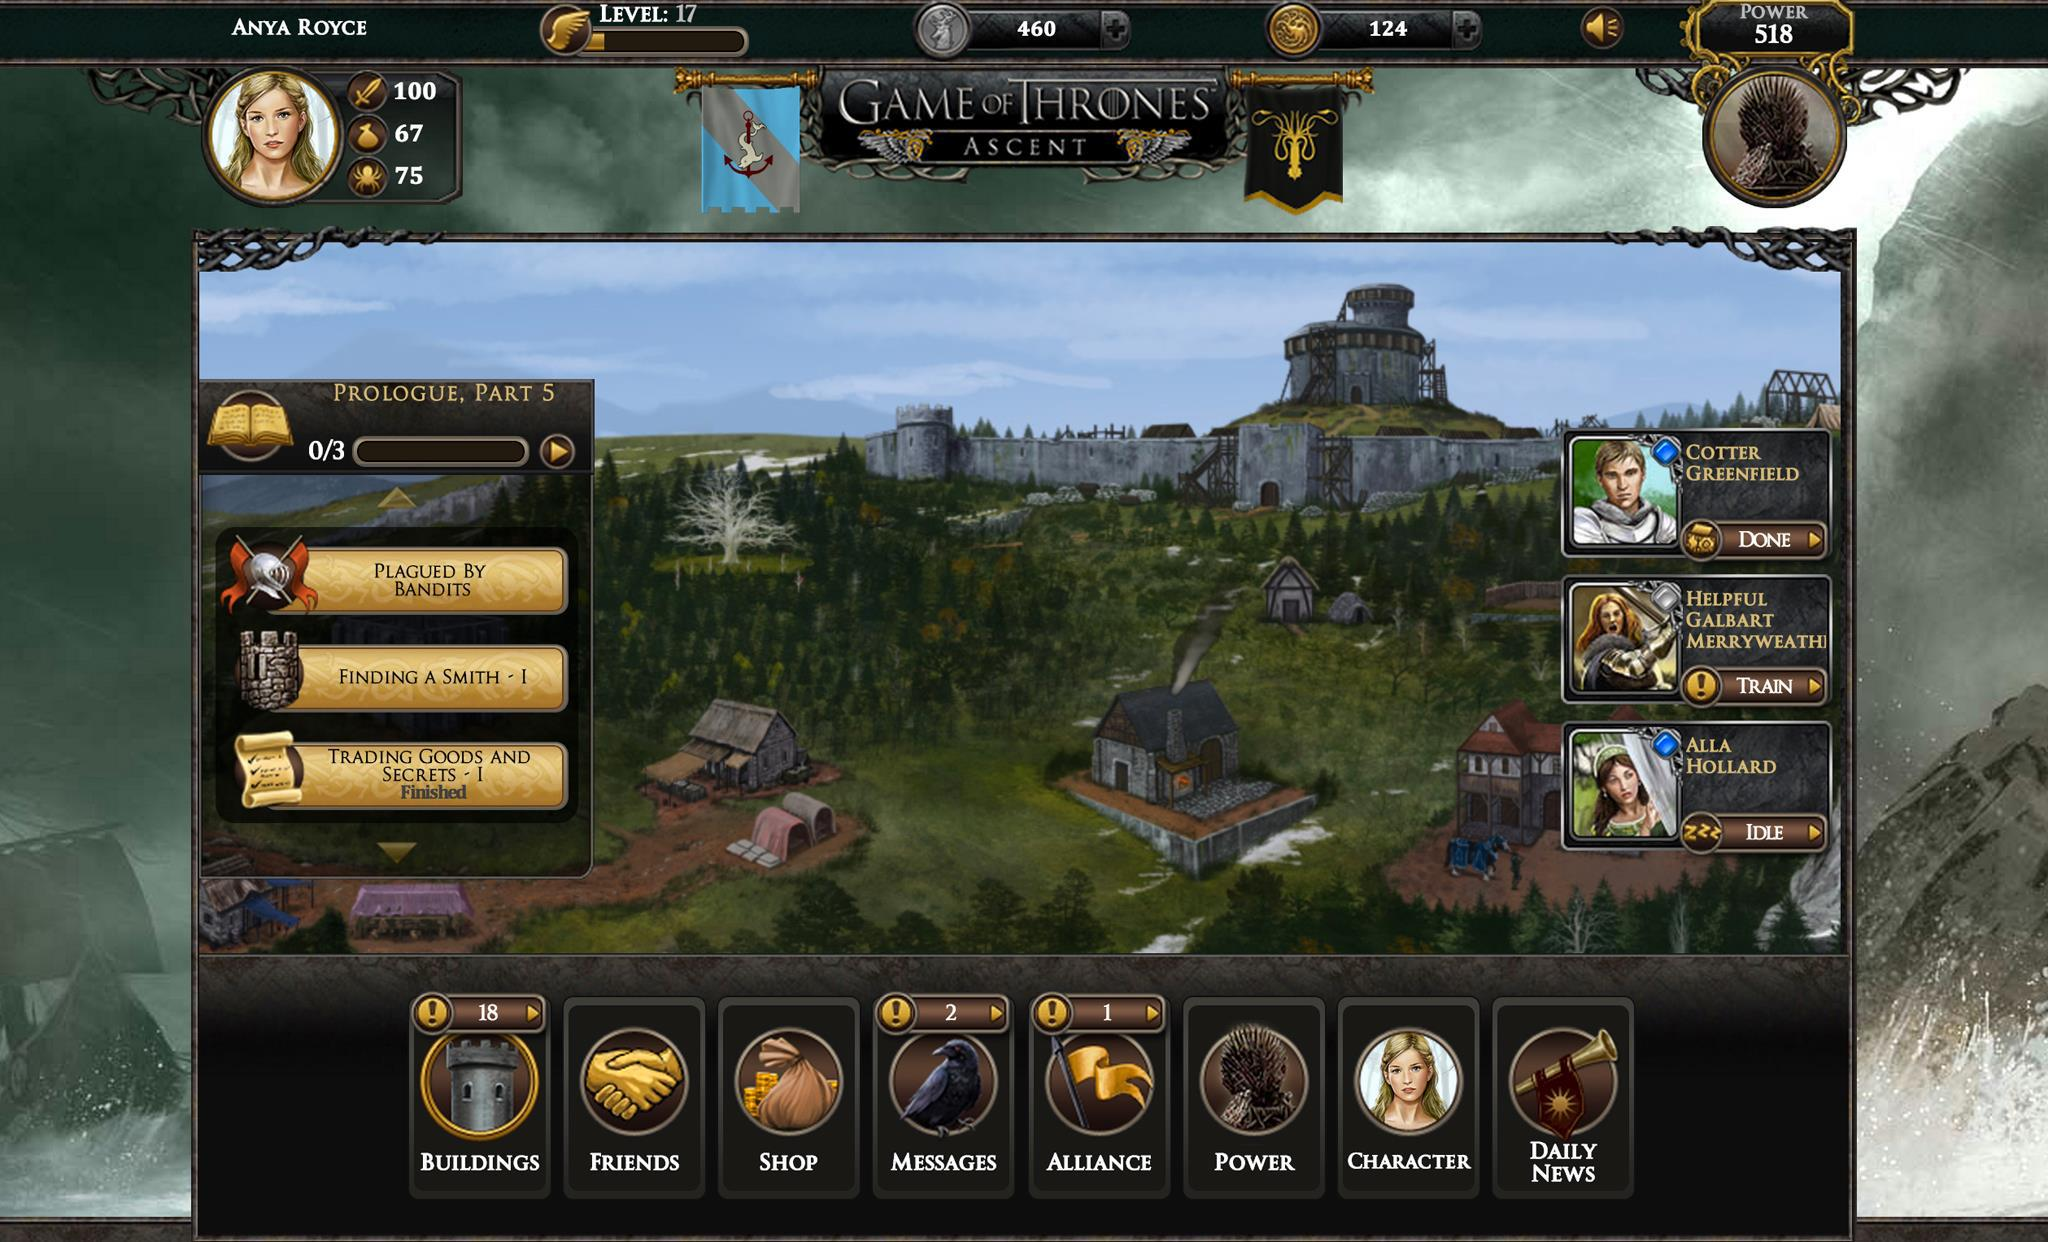 zynga s future looks bright with game of thrones current games and